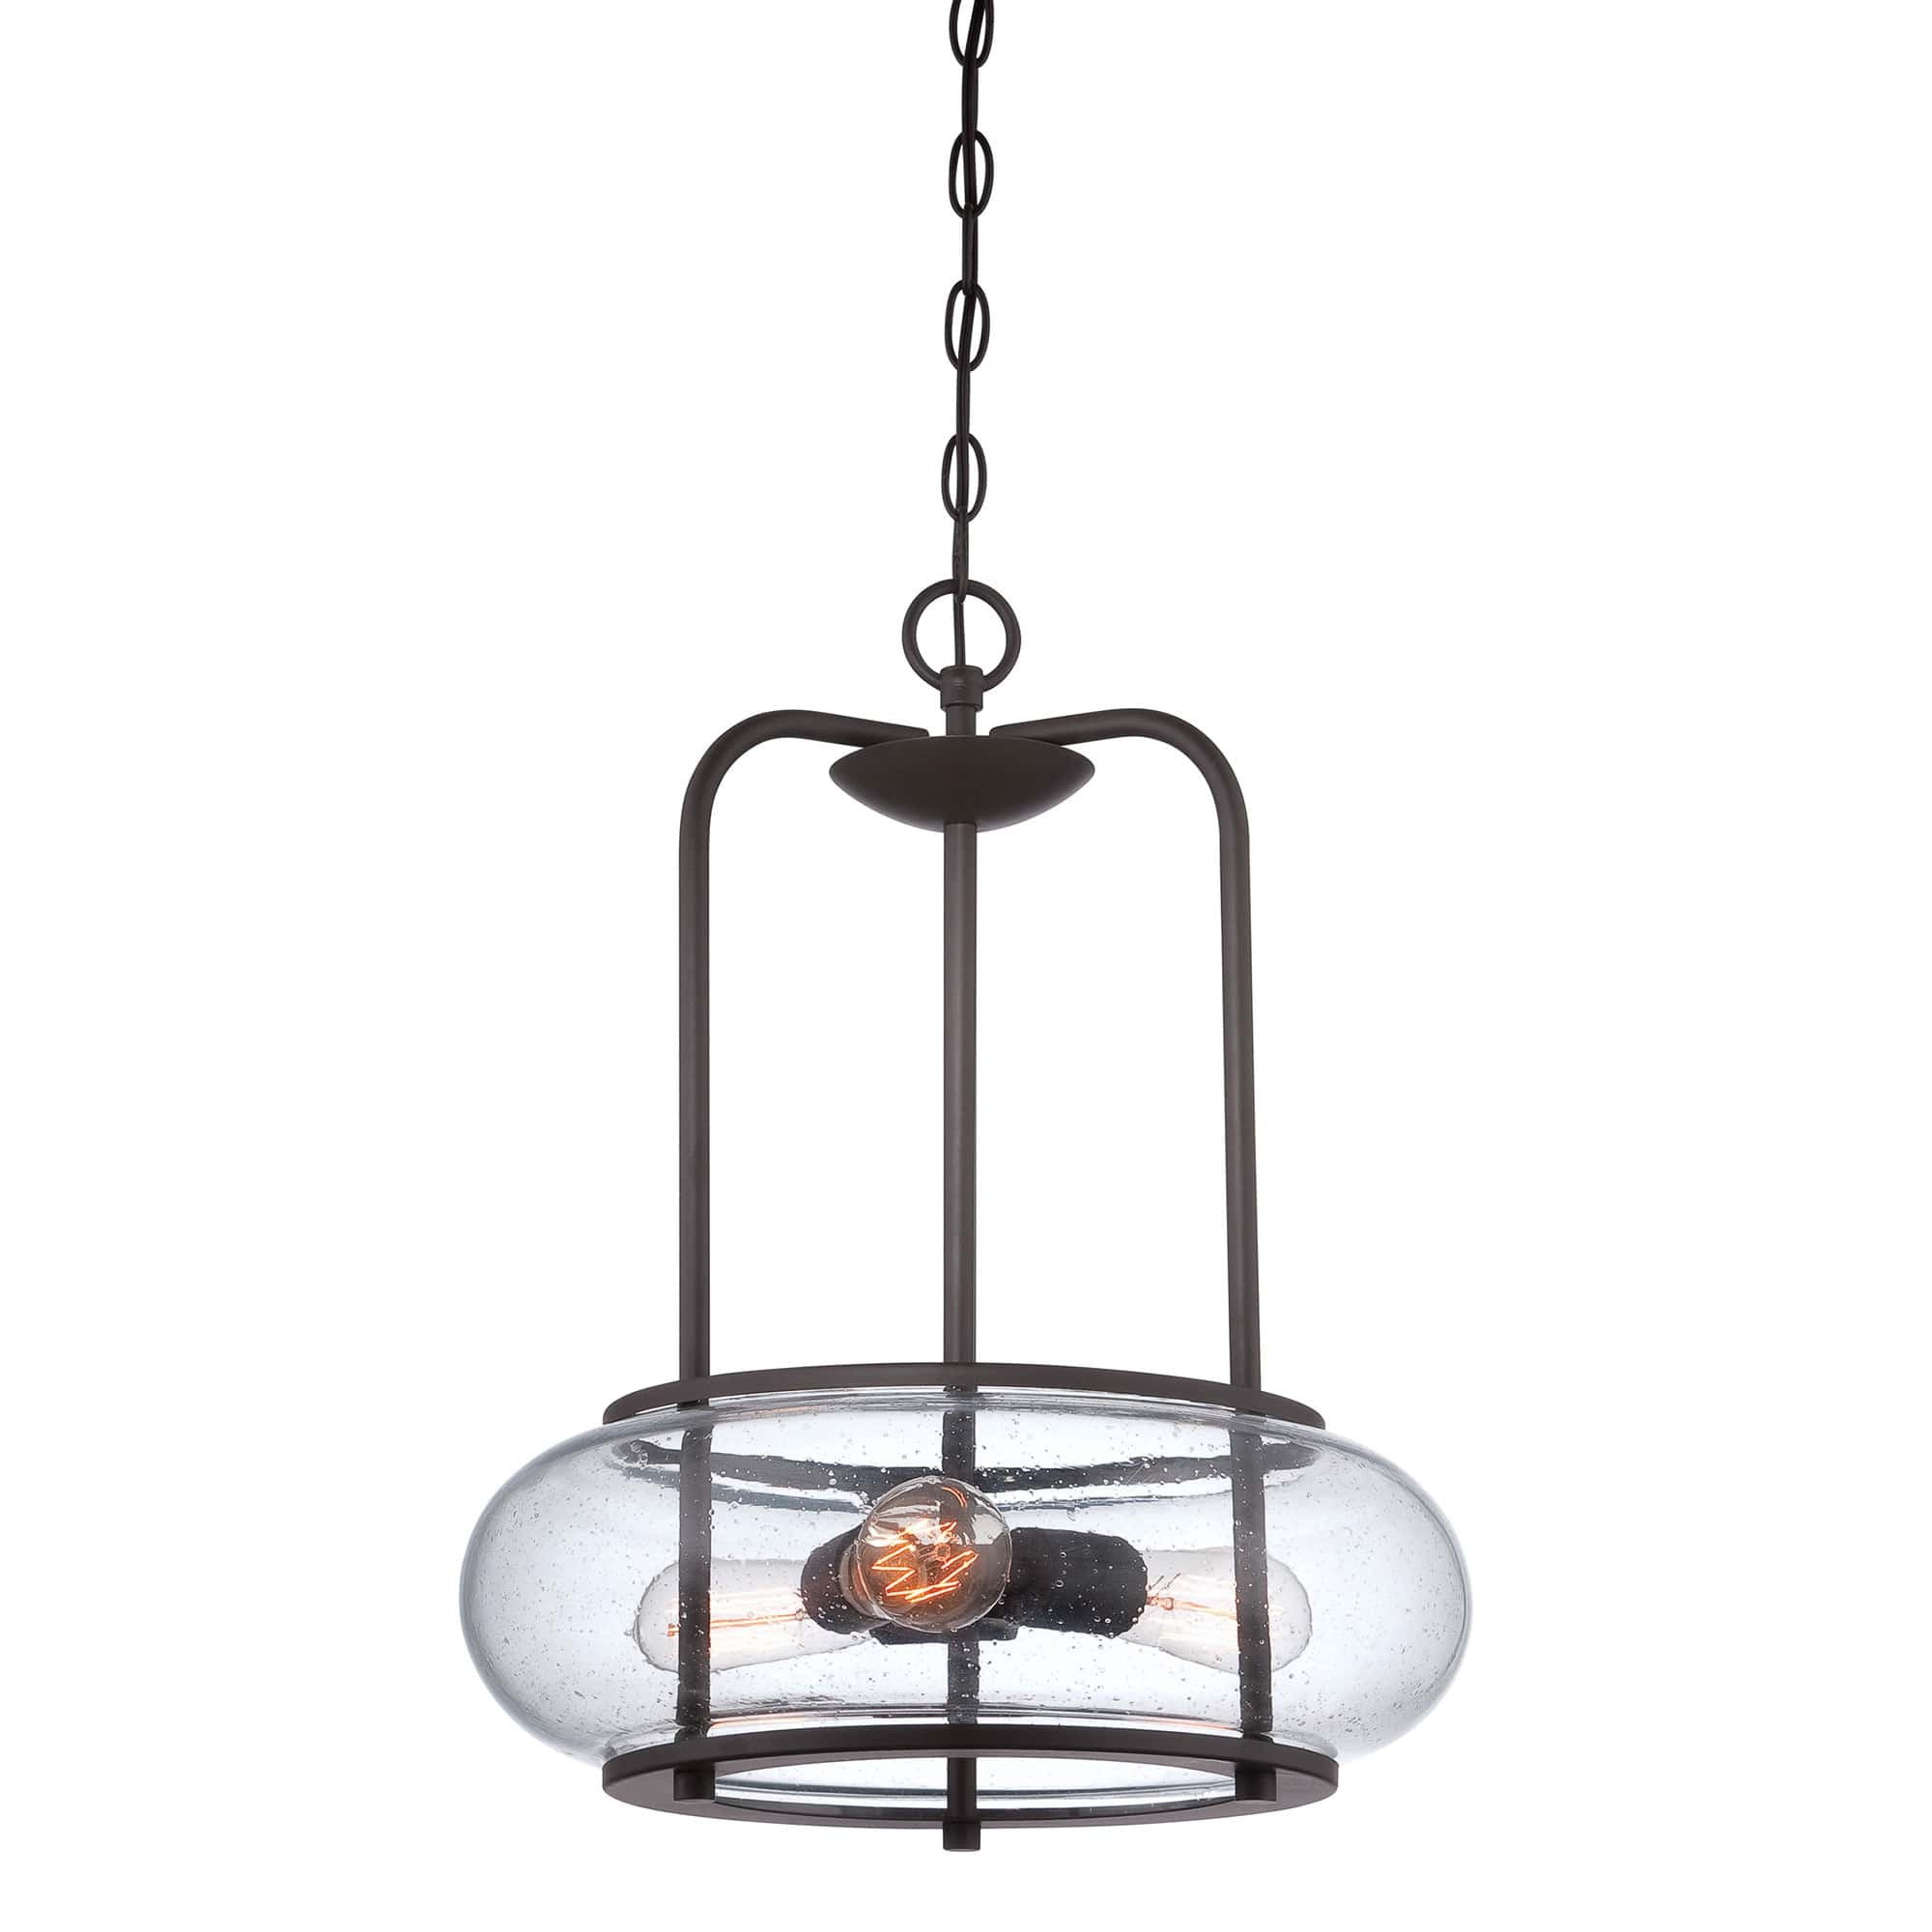 and glass advice lamps five pendant pendants from plus a ideas lighting of lights kitchen selection